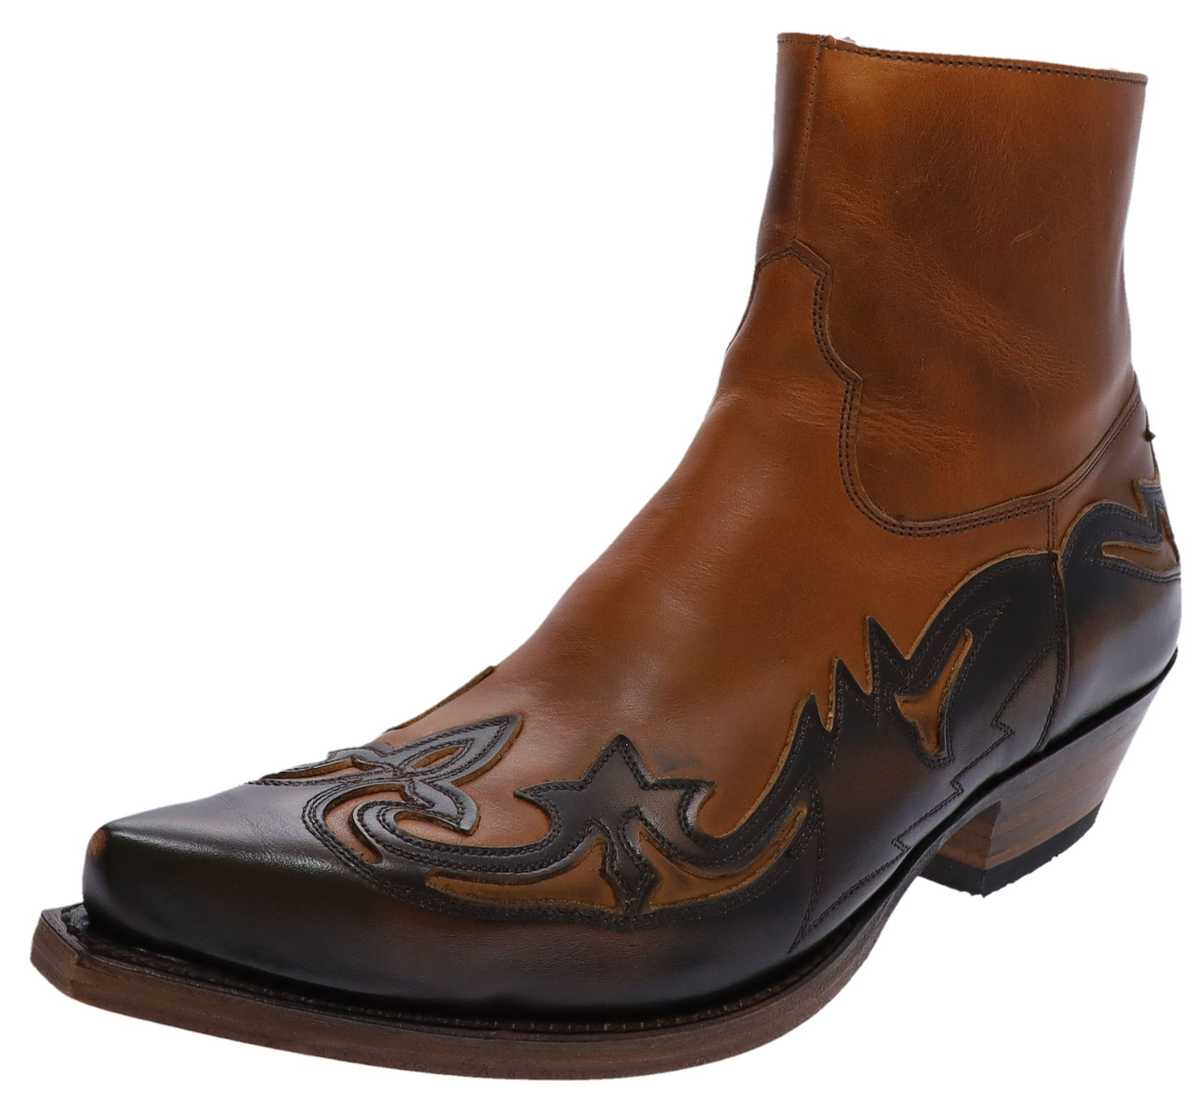 Sendra Boots 5790 Evolution Tang Western Ankle Boot - Brown